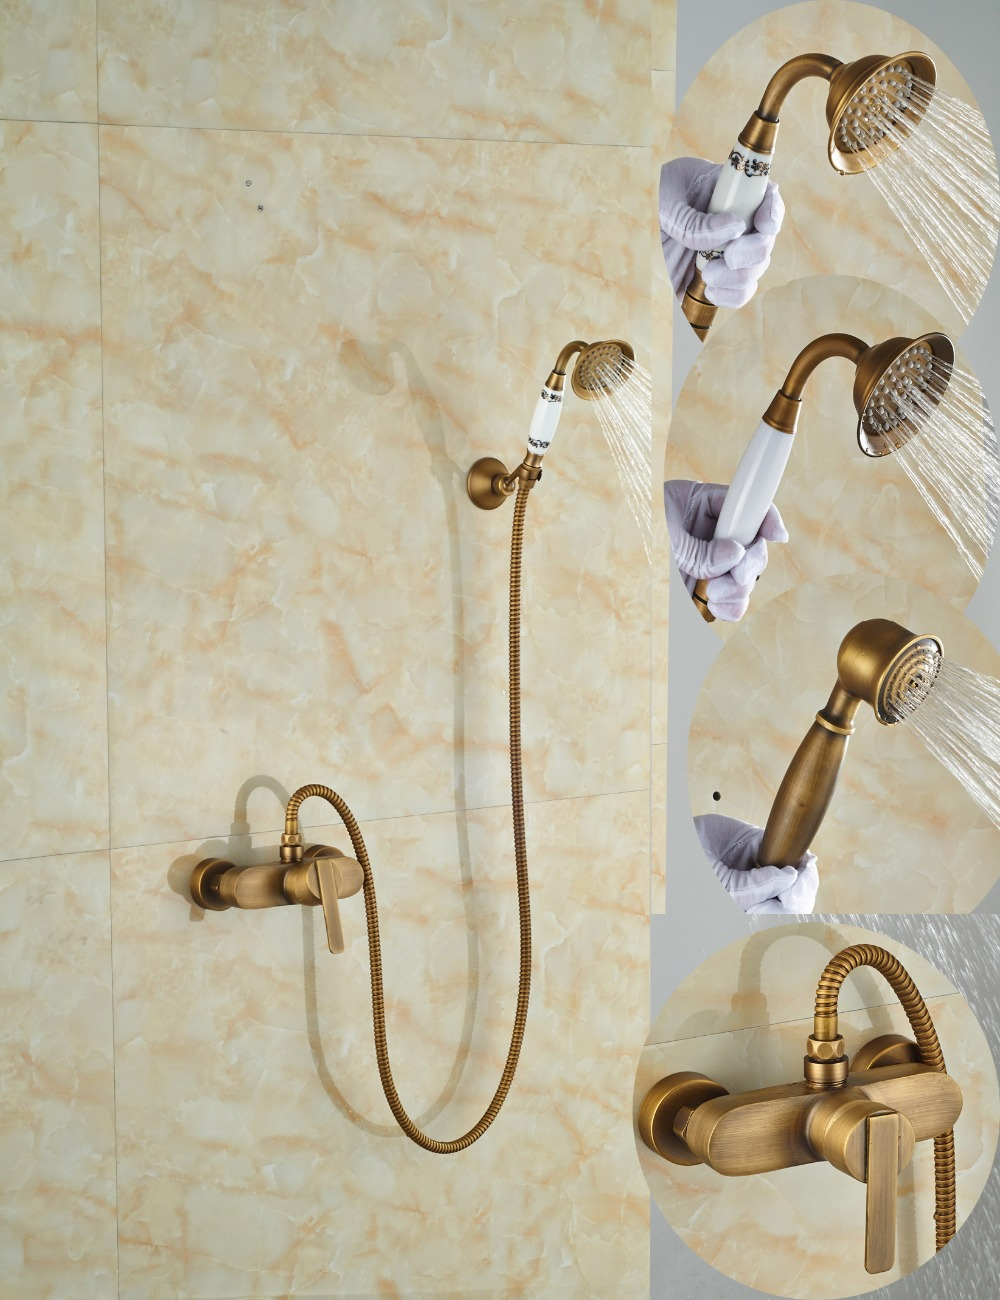 Wholesale And Retail Single Handle Wall Mounted Antique Brass Bathroom Tub Faucet W/ Handheld Shower Mixer Tap free shipping polished chrome finish new wall mounted waterfall bathroom bathtub handheld shower tap mixer faucet yt 5333